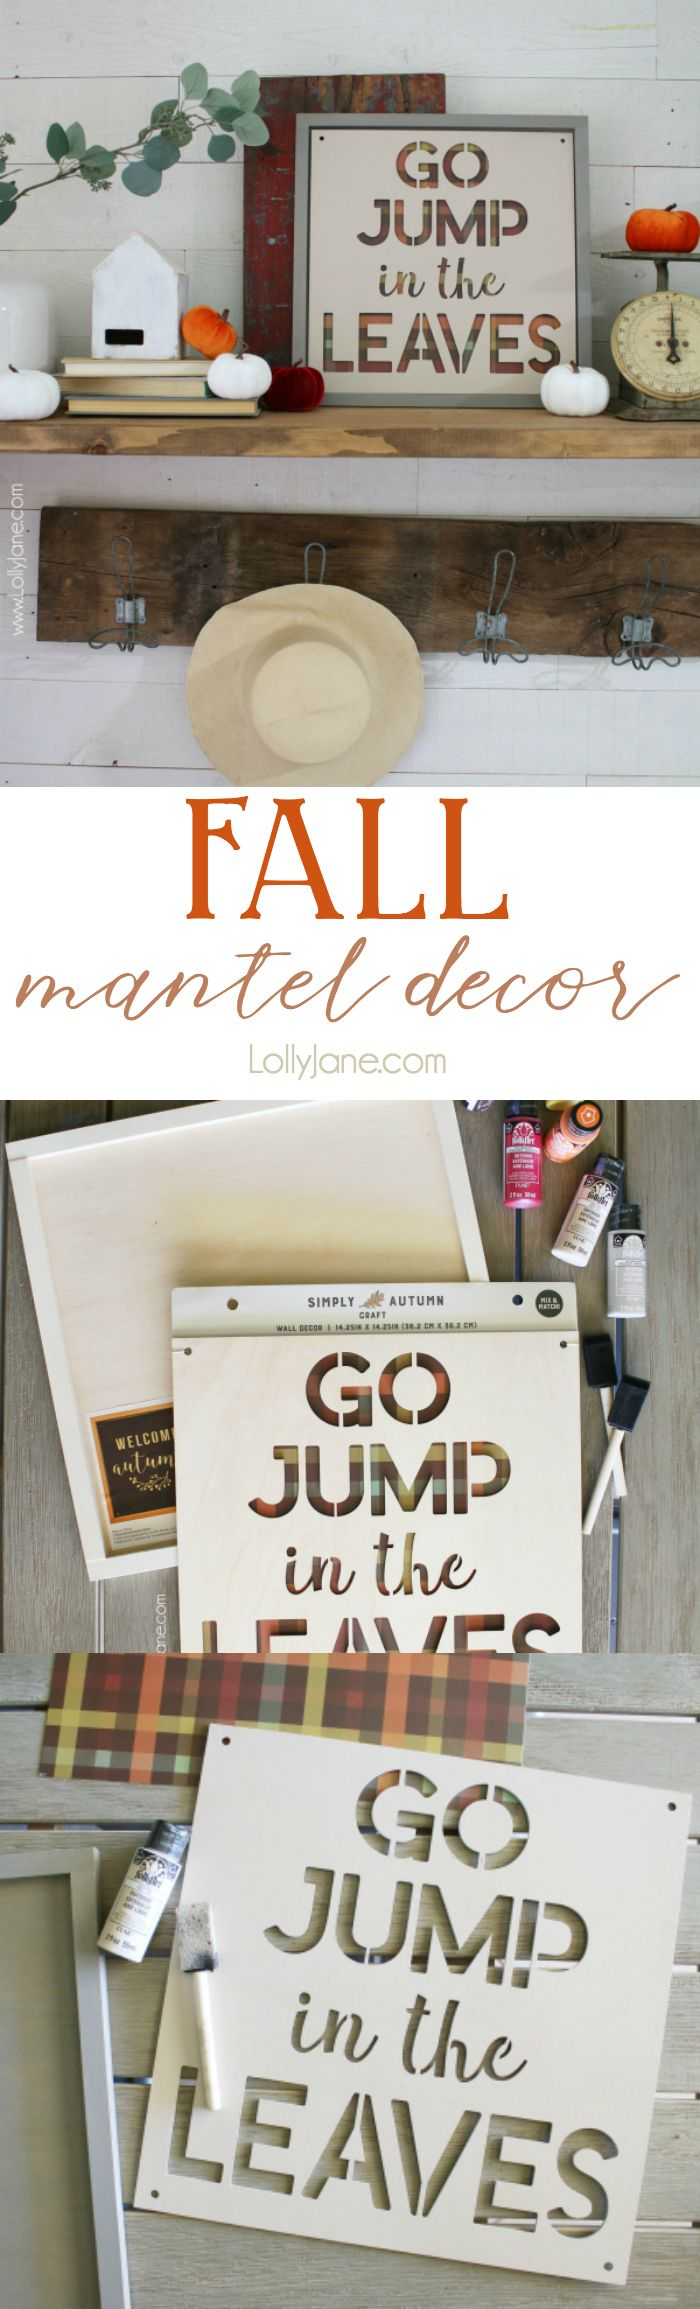 Diy Crafts Love This Plaid Fall Sign Using Buffalo Check Paper And A Pre Made Wood Frame Fr Diyall Net Home Of Diy Craft Ideas Inspiration Diy Projects Craft